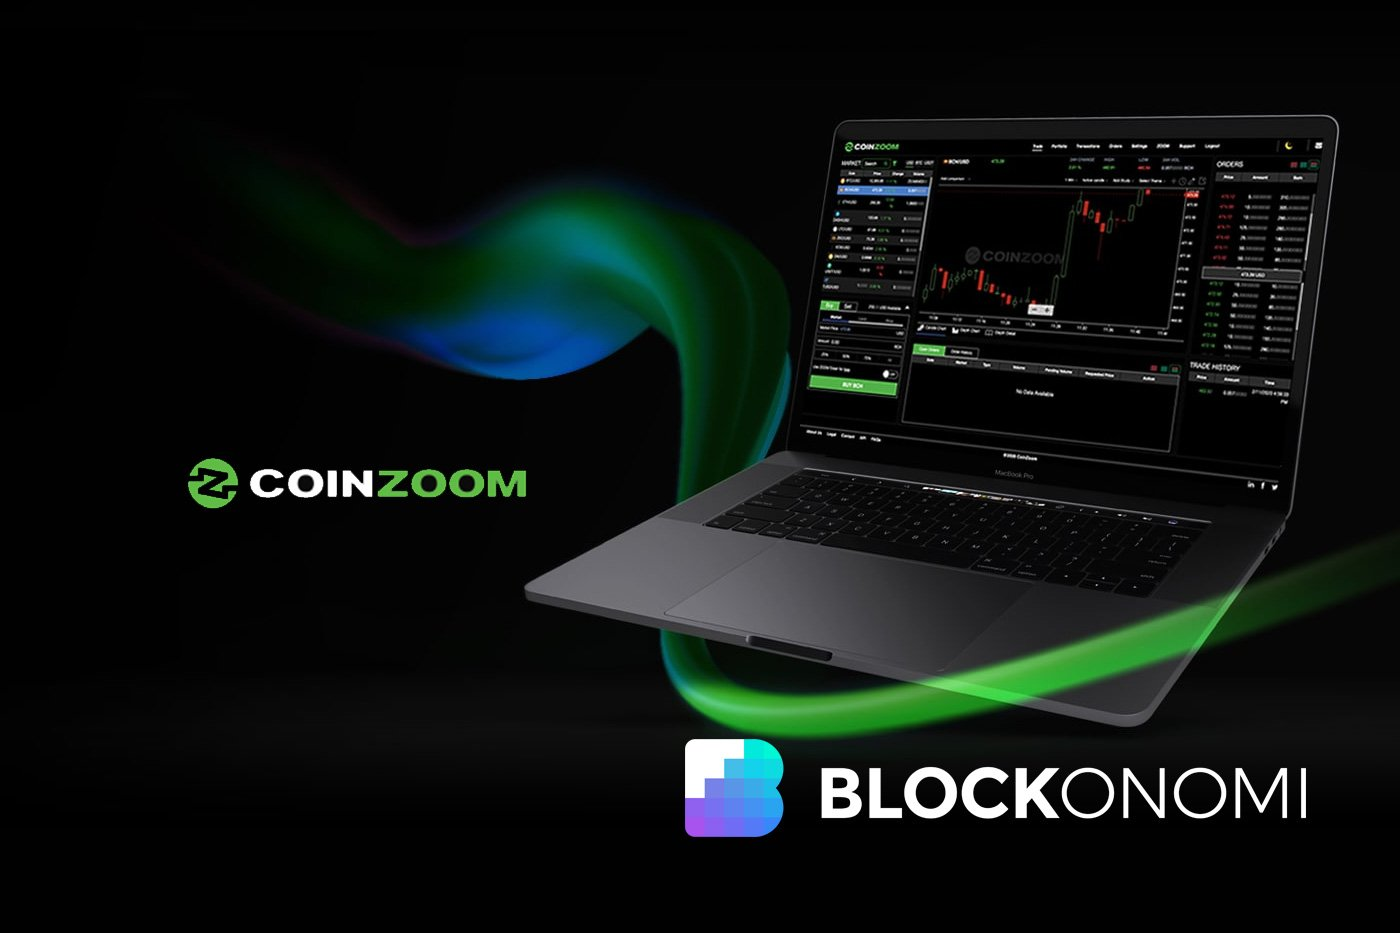 CoinZoom: ZoomMe Remittance Feature for P2P Fiat & Crypto Transfers